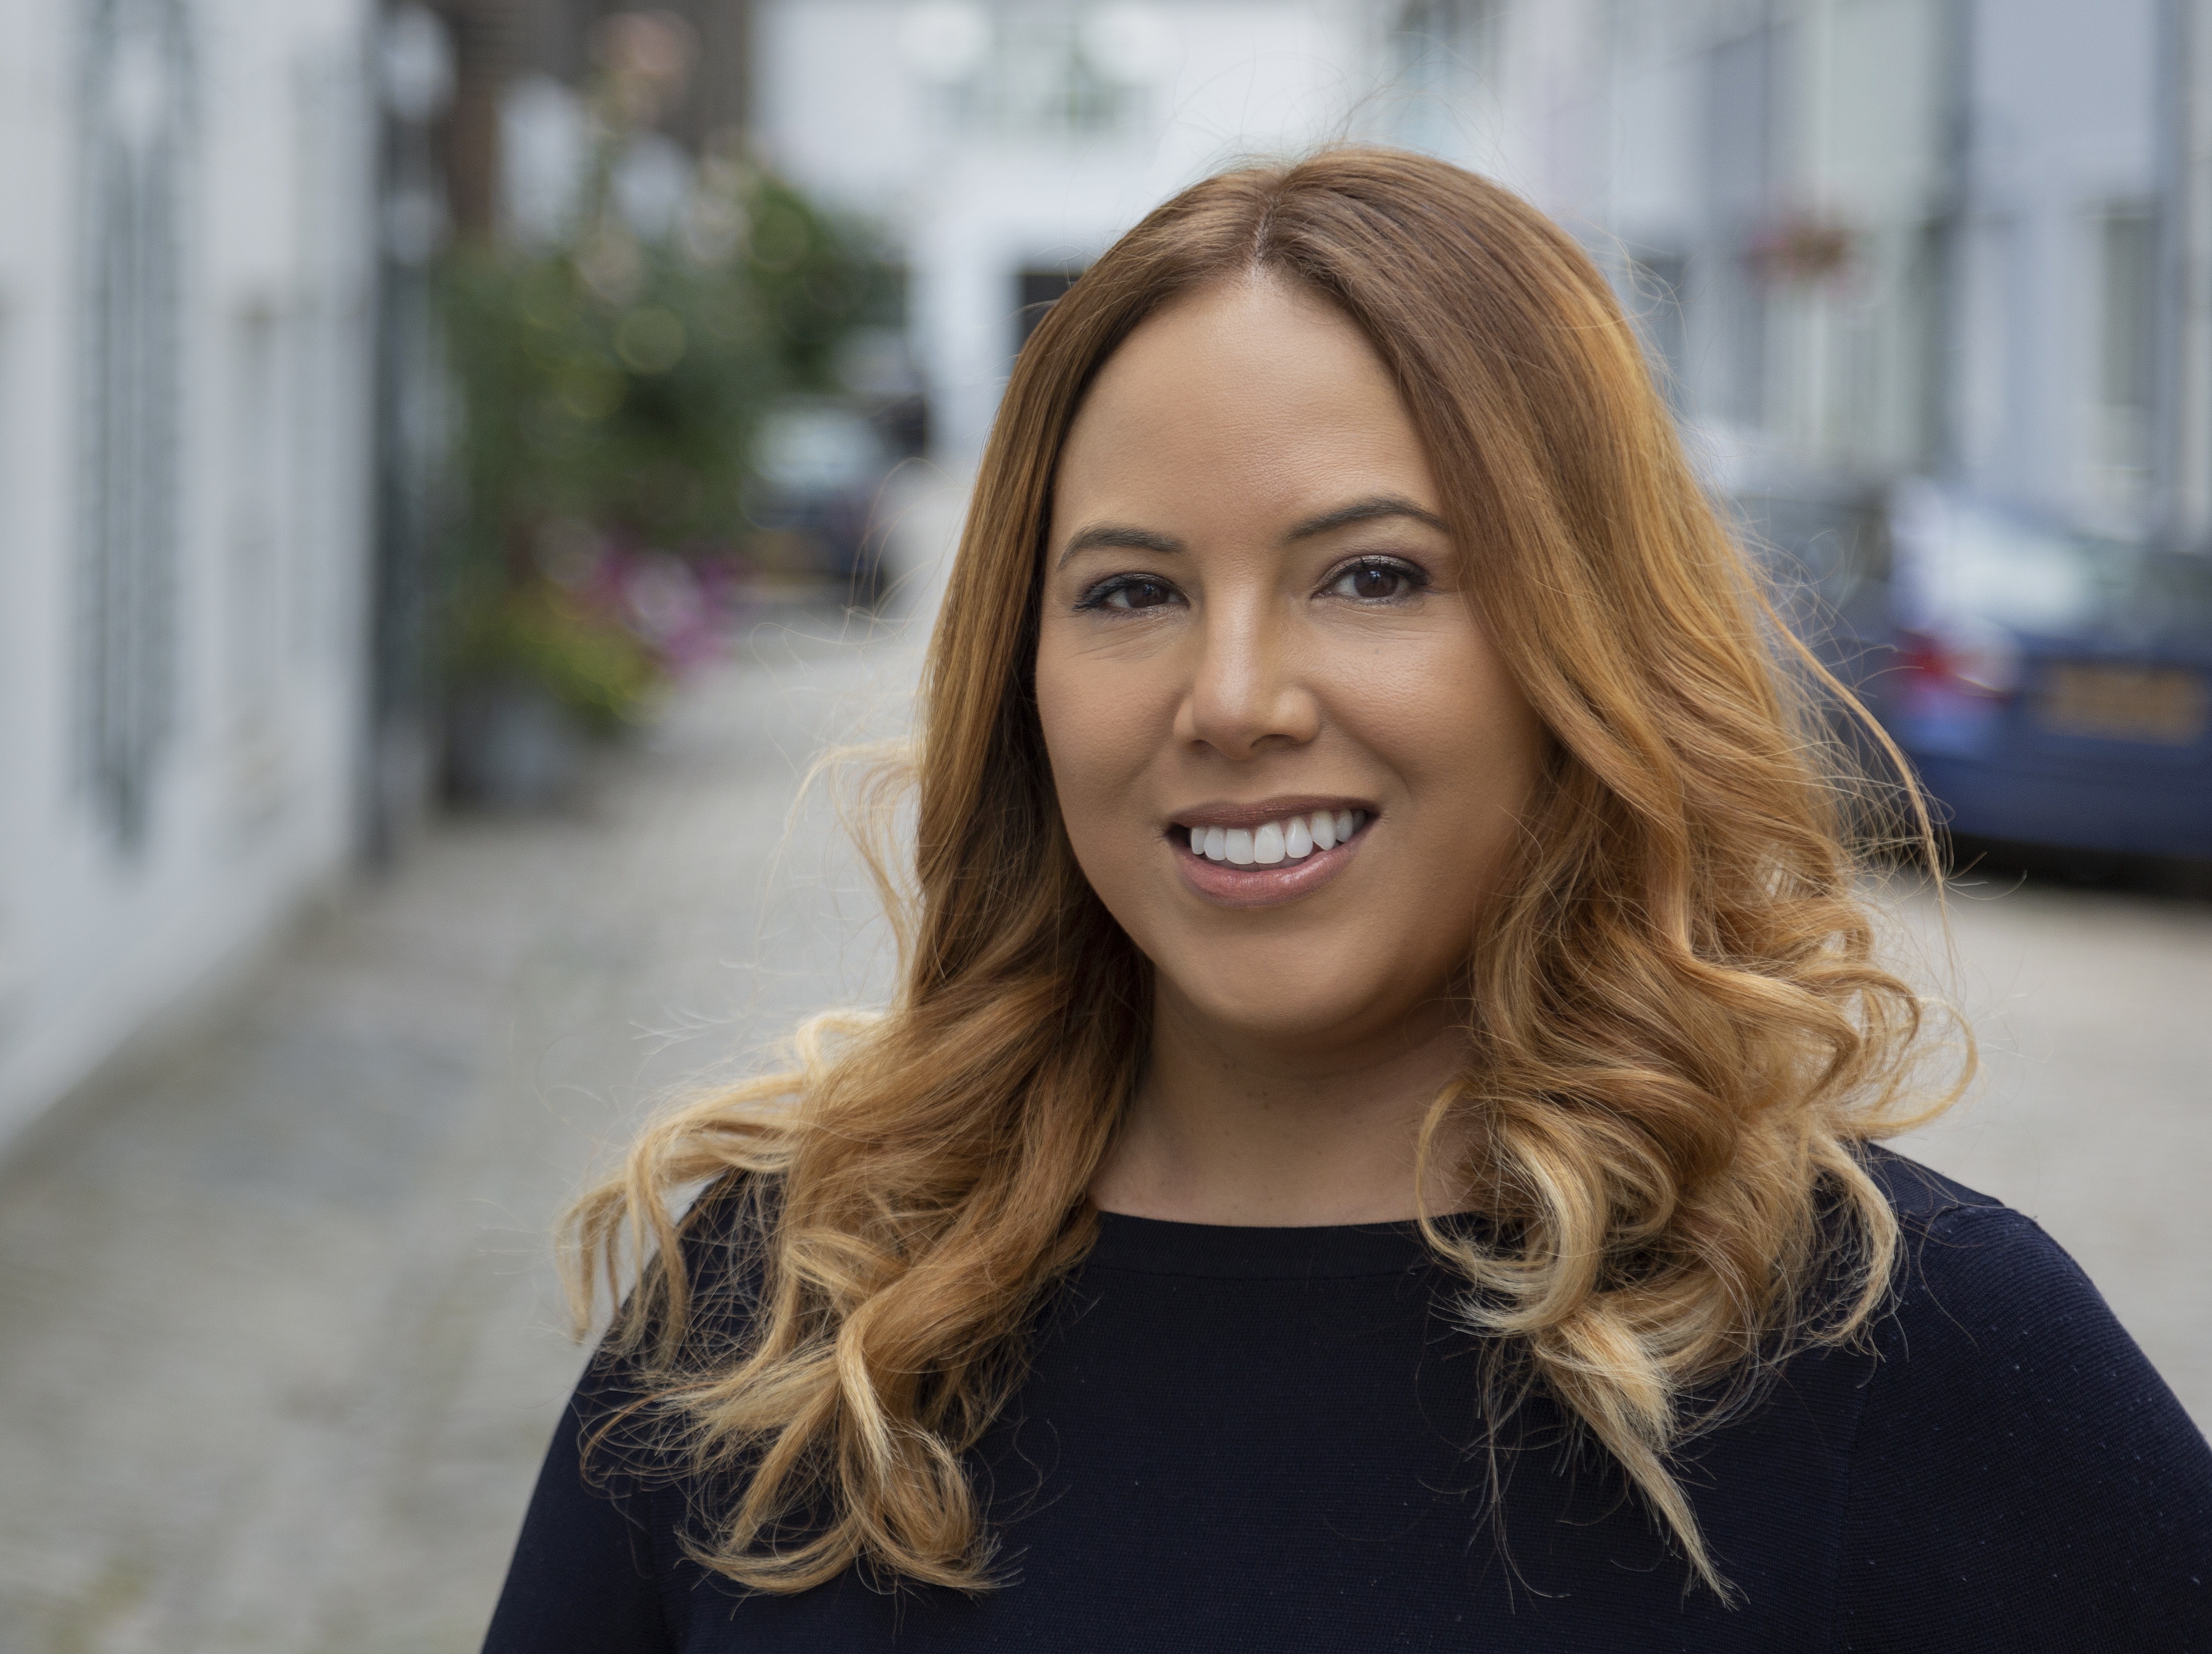 Geometry UK's Digital Chief Officer Shortlisted at Women in Marketing Awards